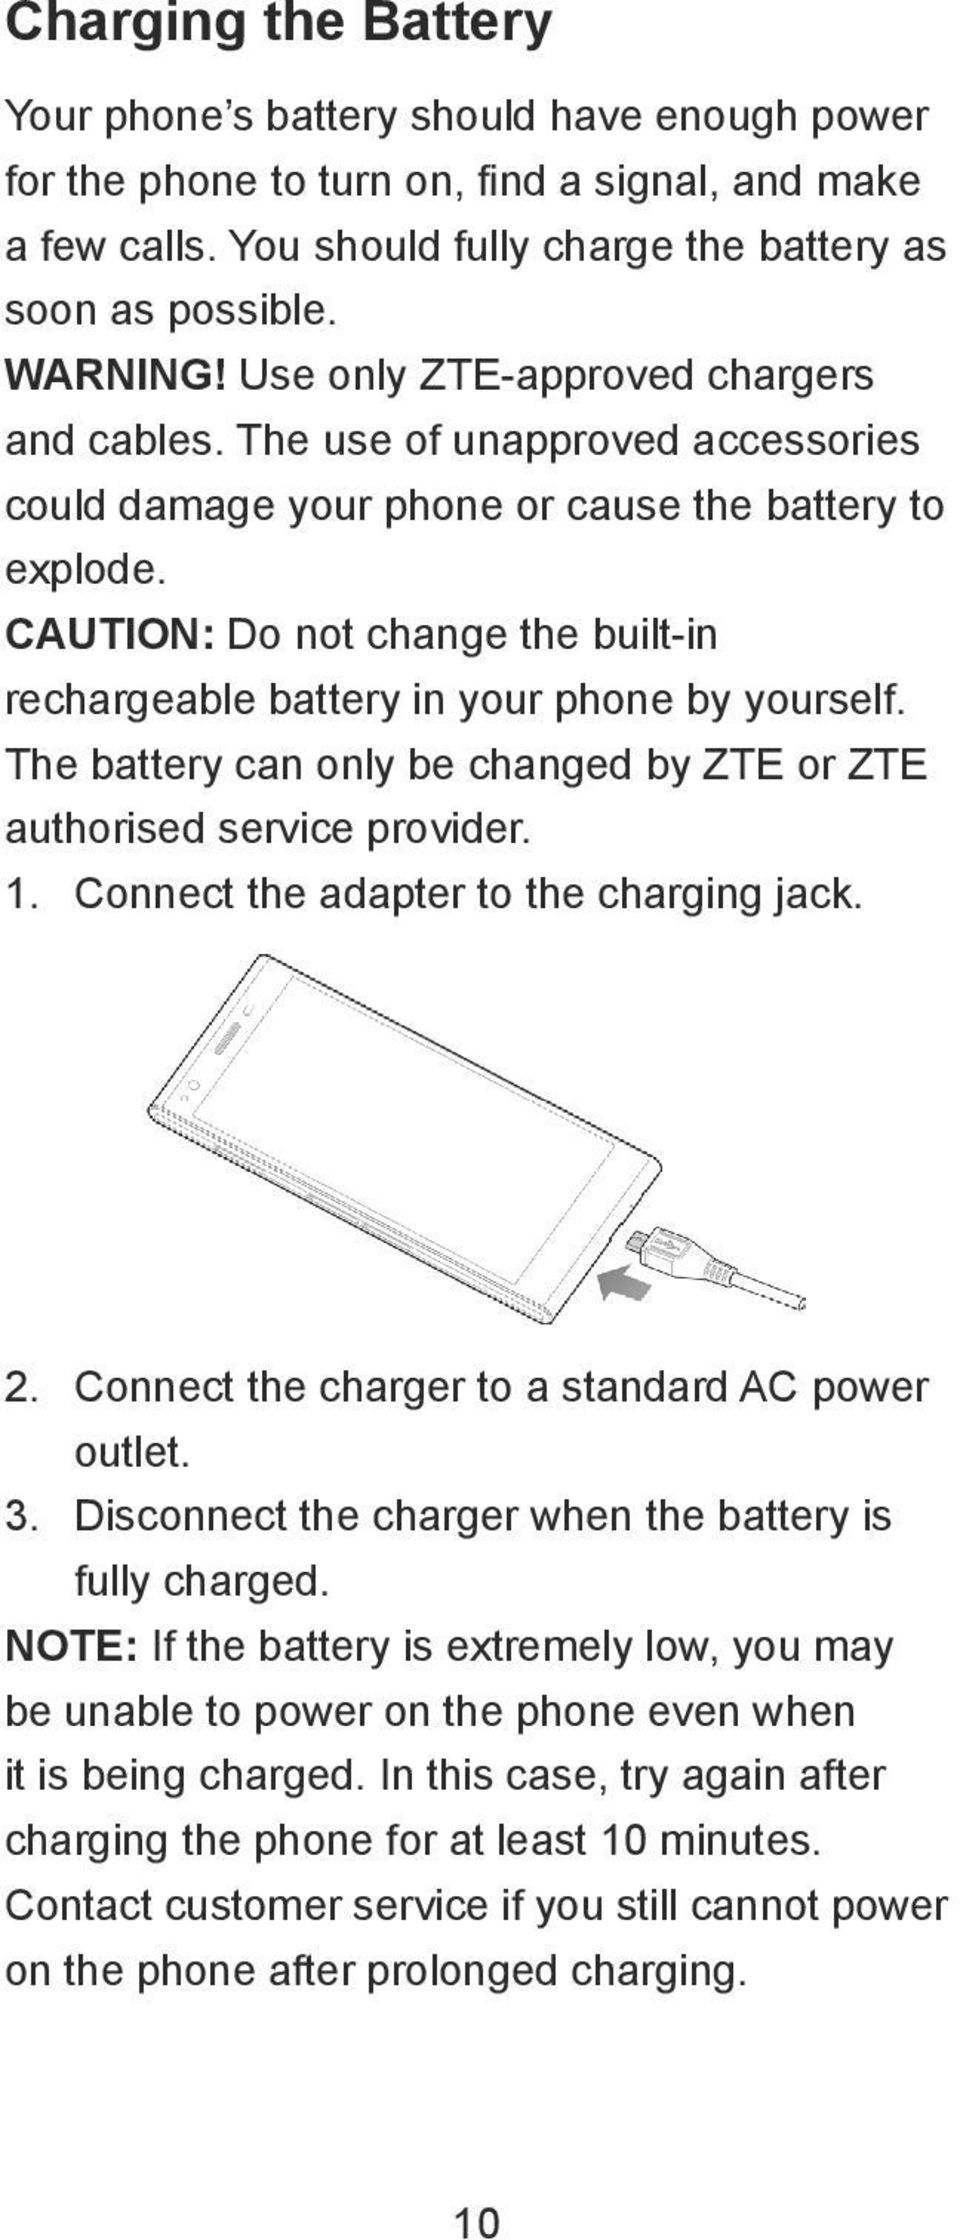 CAUTION: Do not change the built-in rechargeable battery in your phone by yourself. The battery can only be changed by ZTE or ZTE authorised service provider. 1.